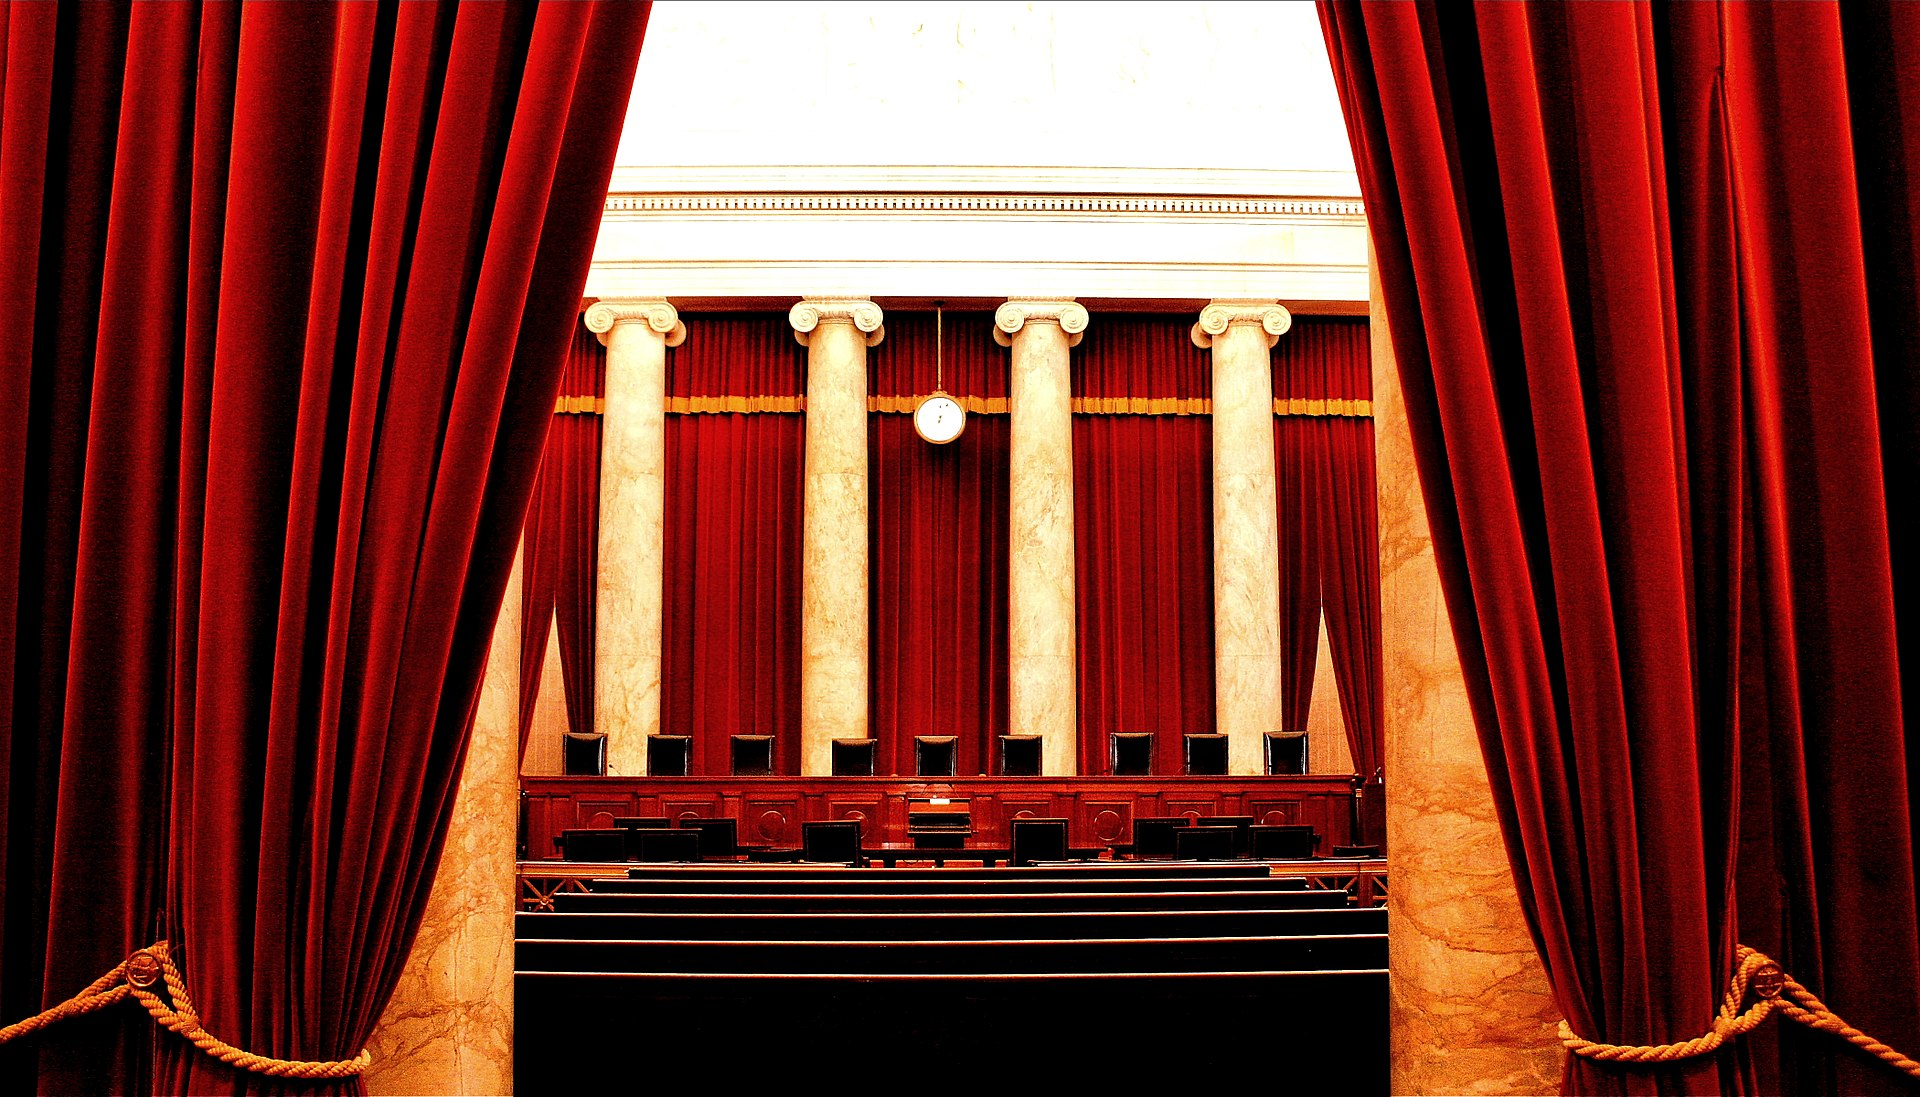 The interior of the United States Supreme Court